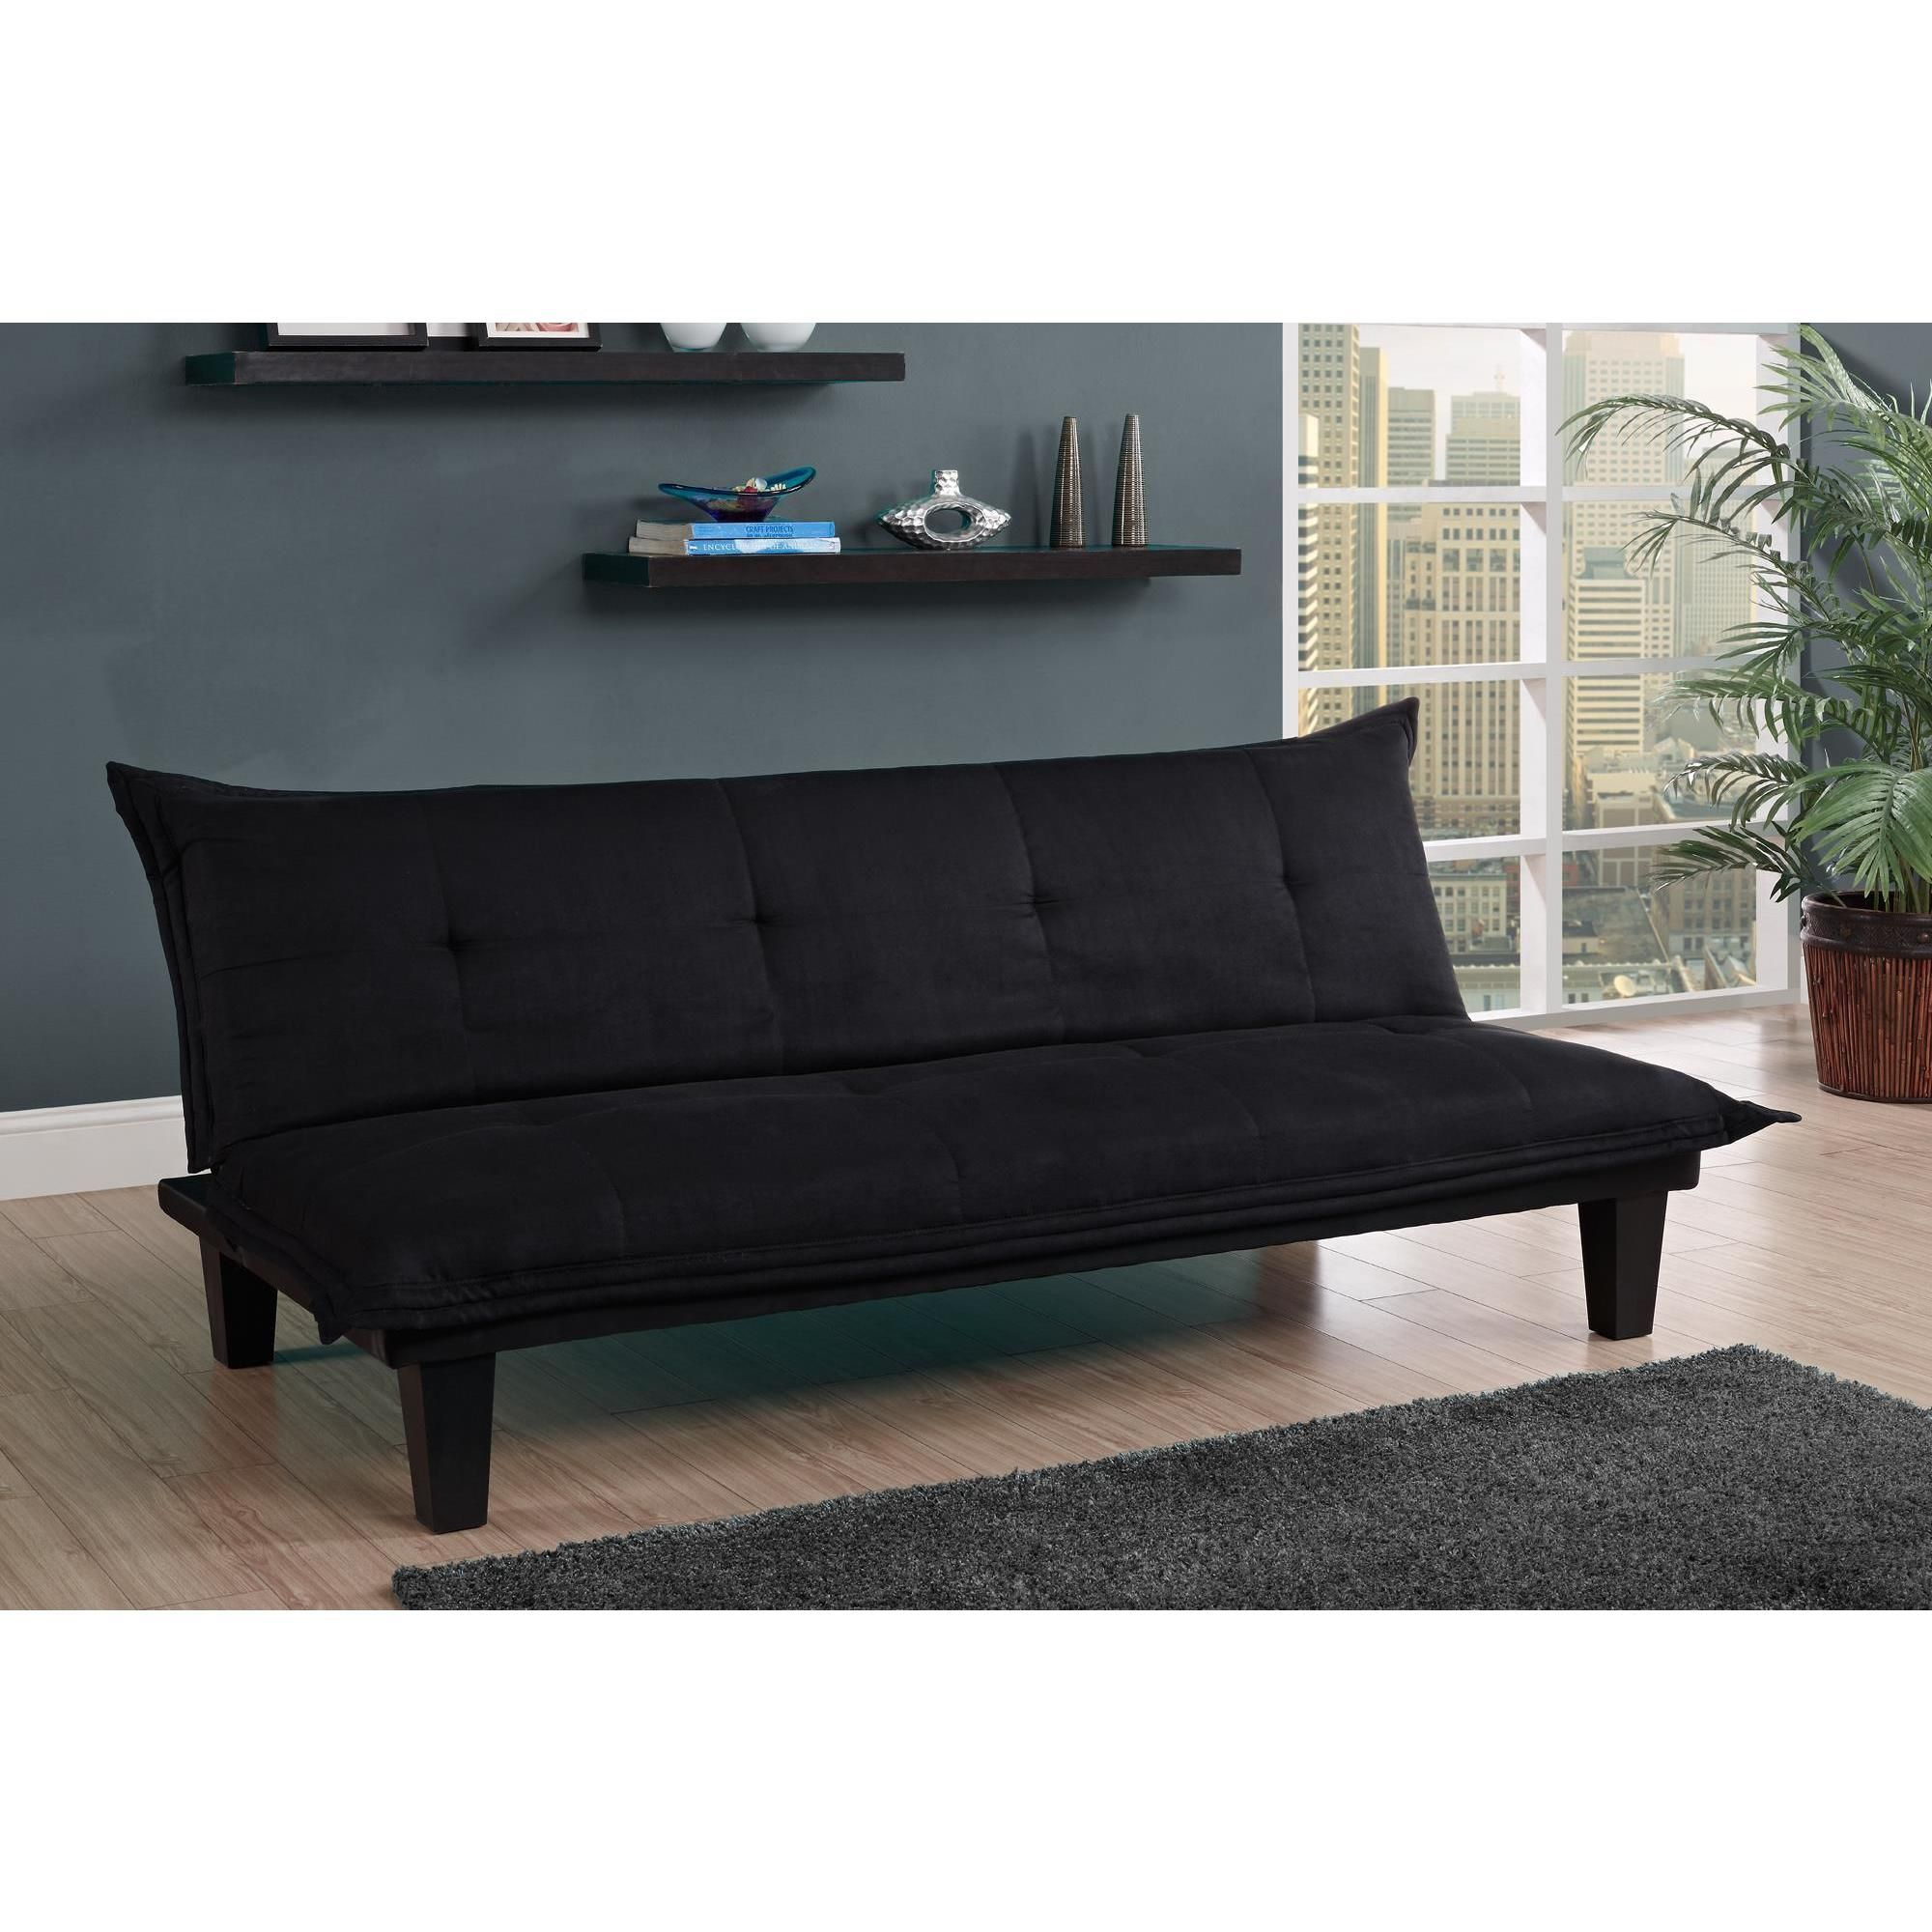 Dhp Lodge FutonblackIn 2019Products Refurbished Sofa H2DeWE9YIb